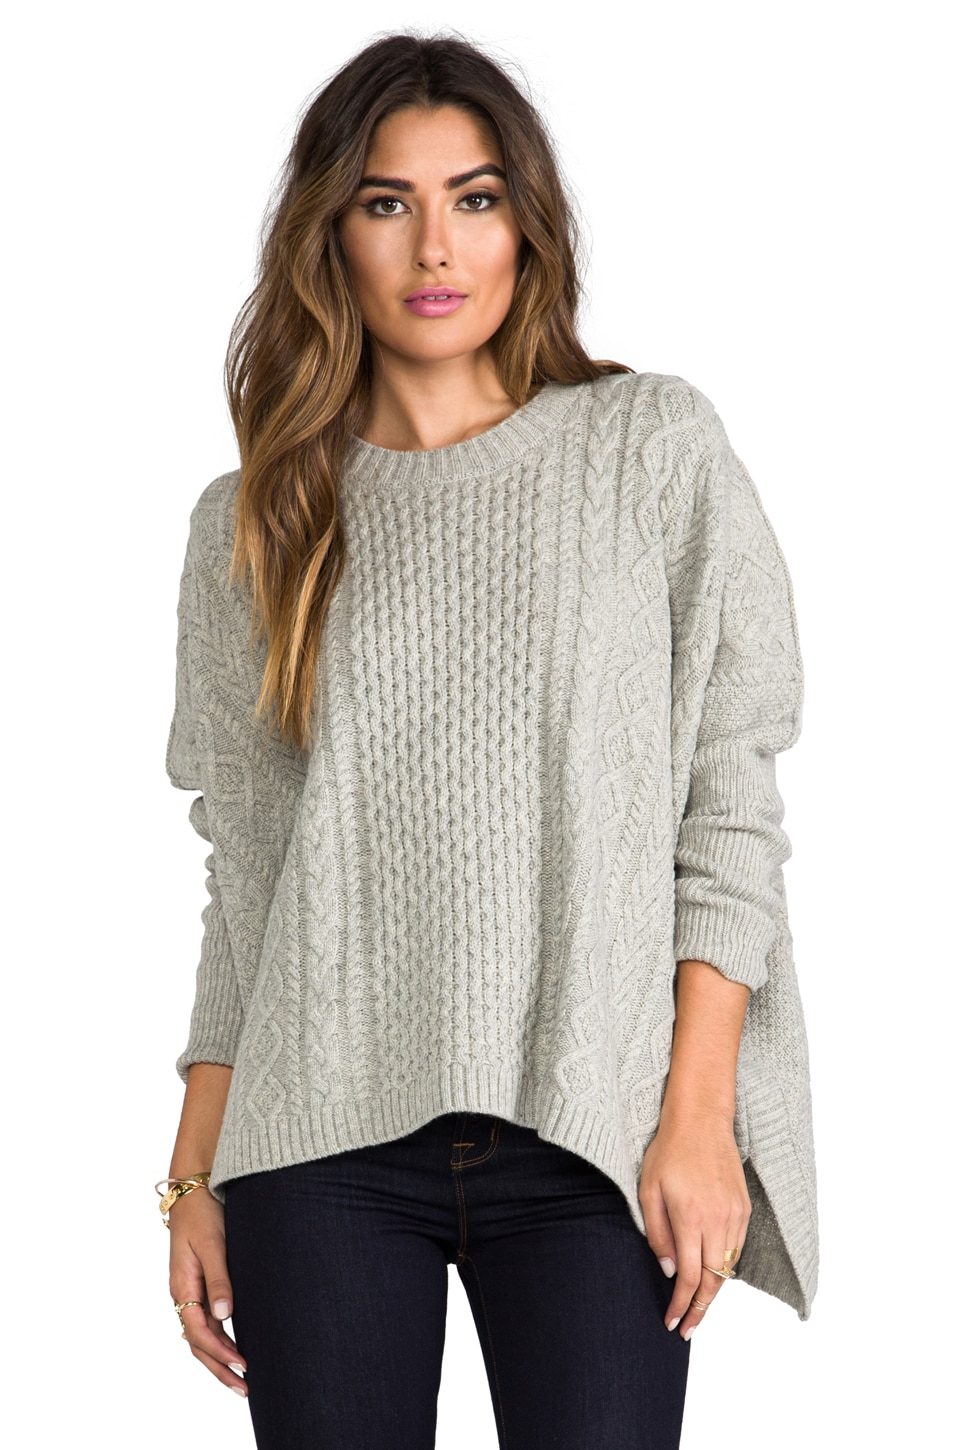 Marc by Marc Jacobs Frieda Sweater in Oyster Melange